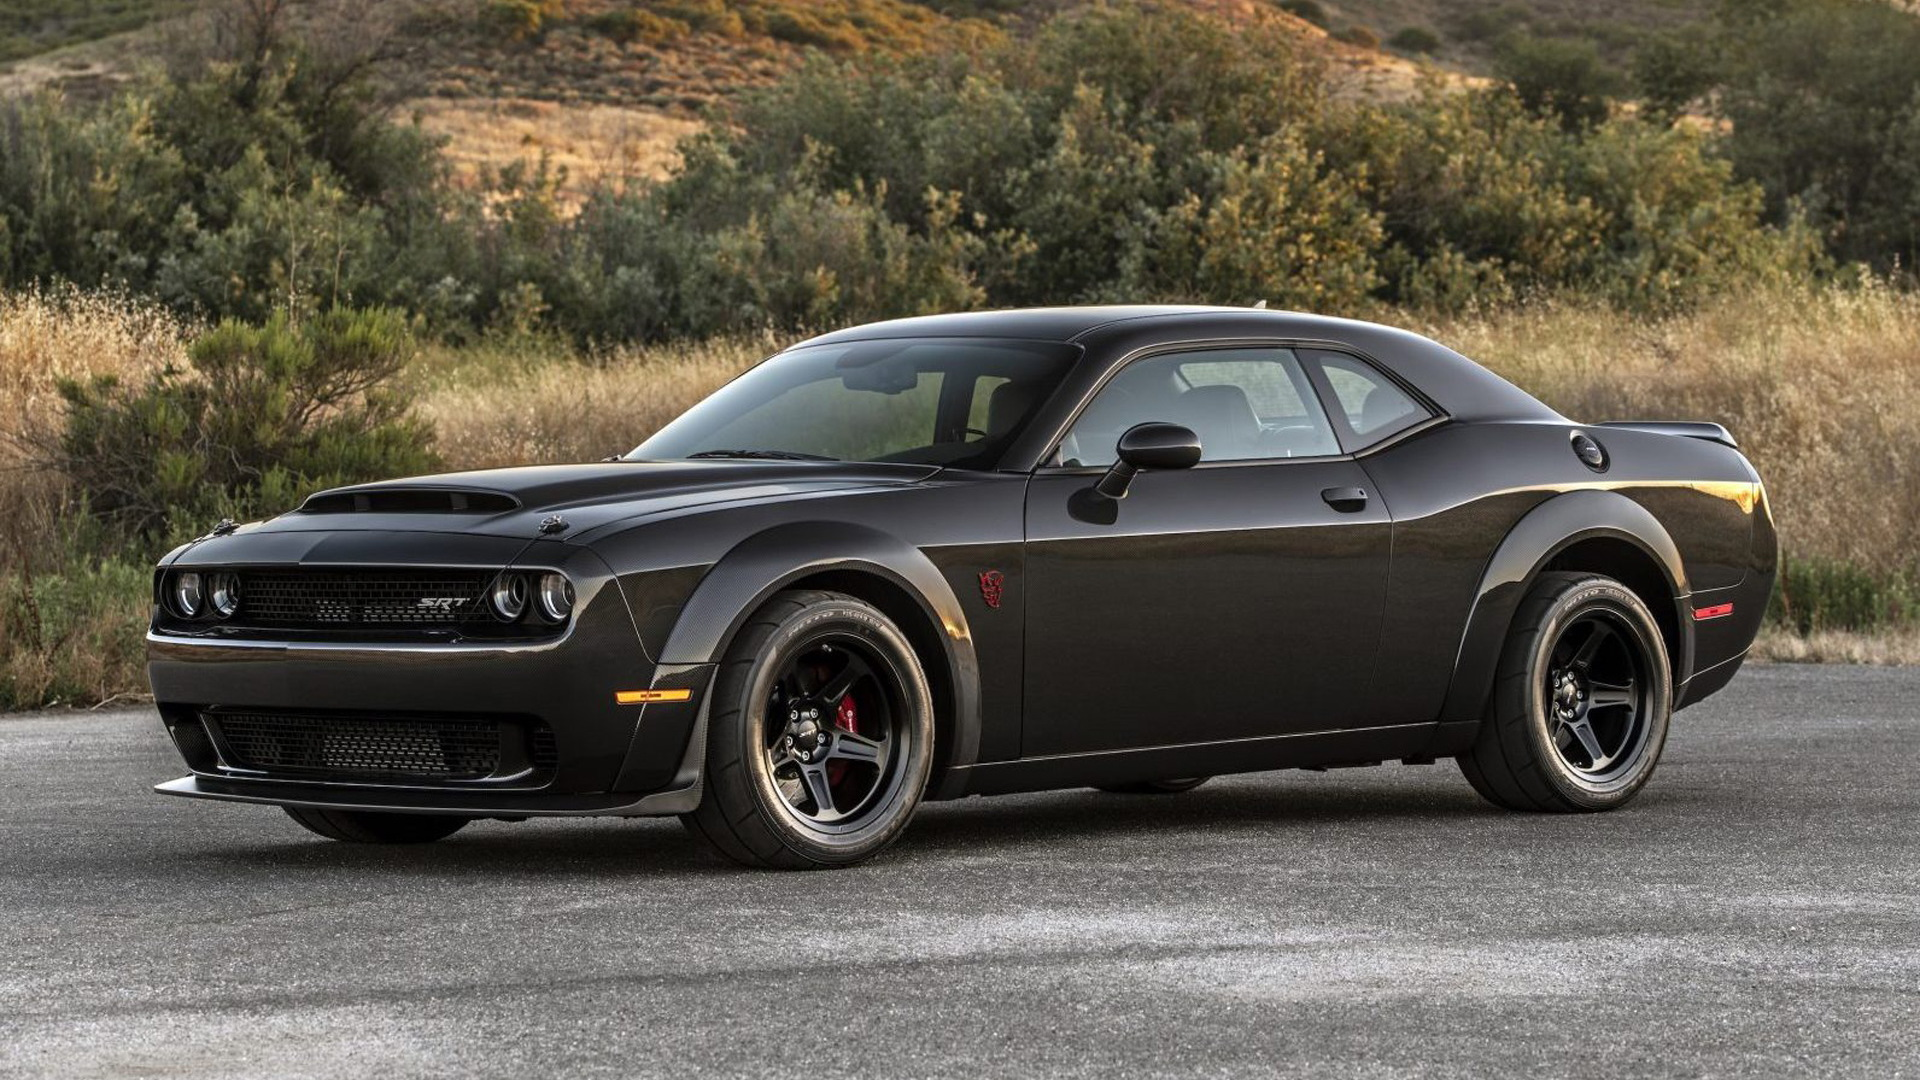 2018 Dodge Challenger SRT Demon with carbon-fiber body by SpeedKore - Photo credit: Bring a Trailer